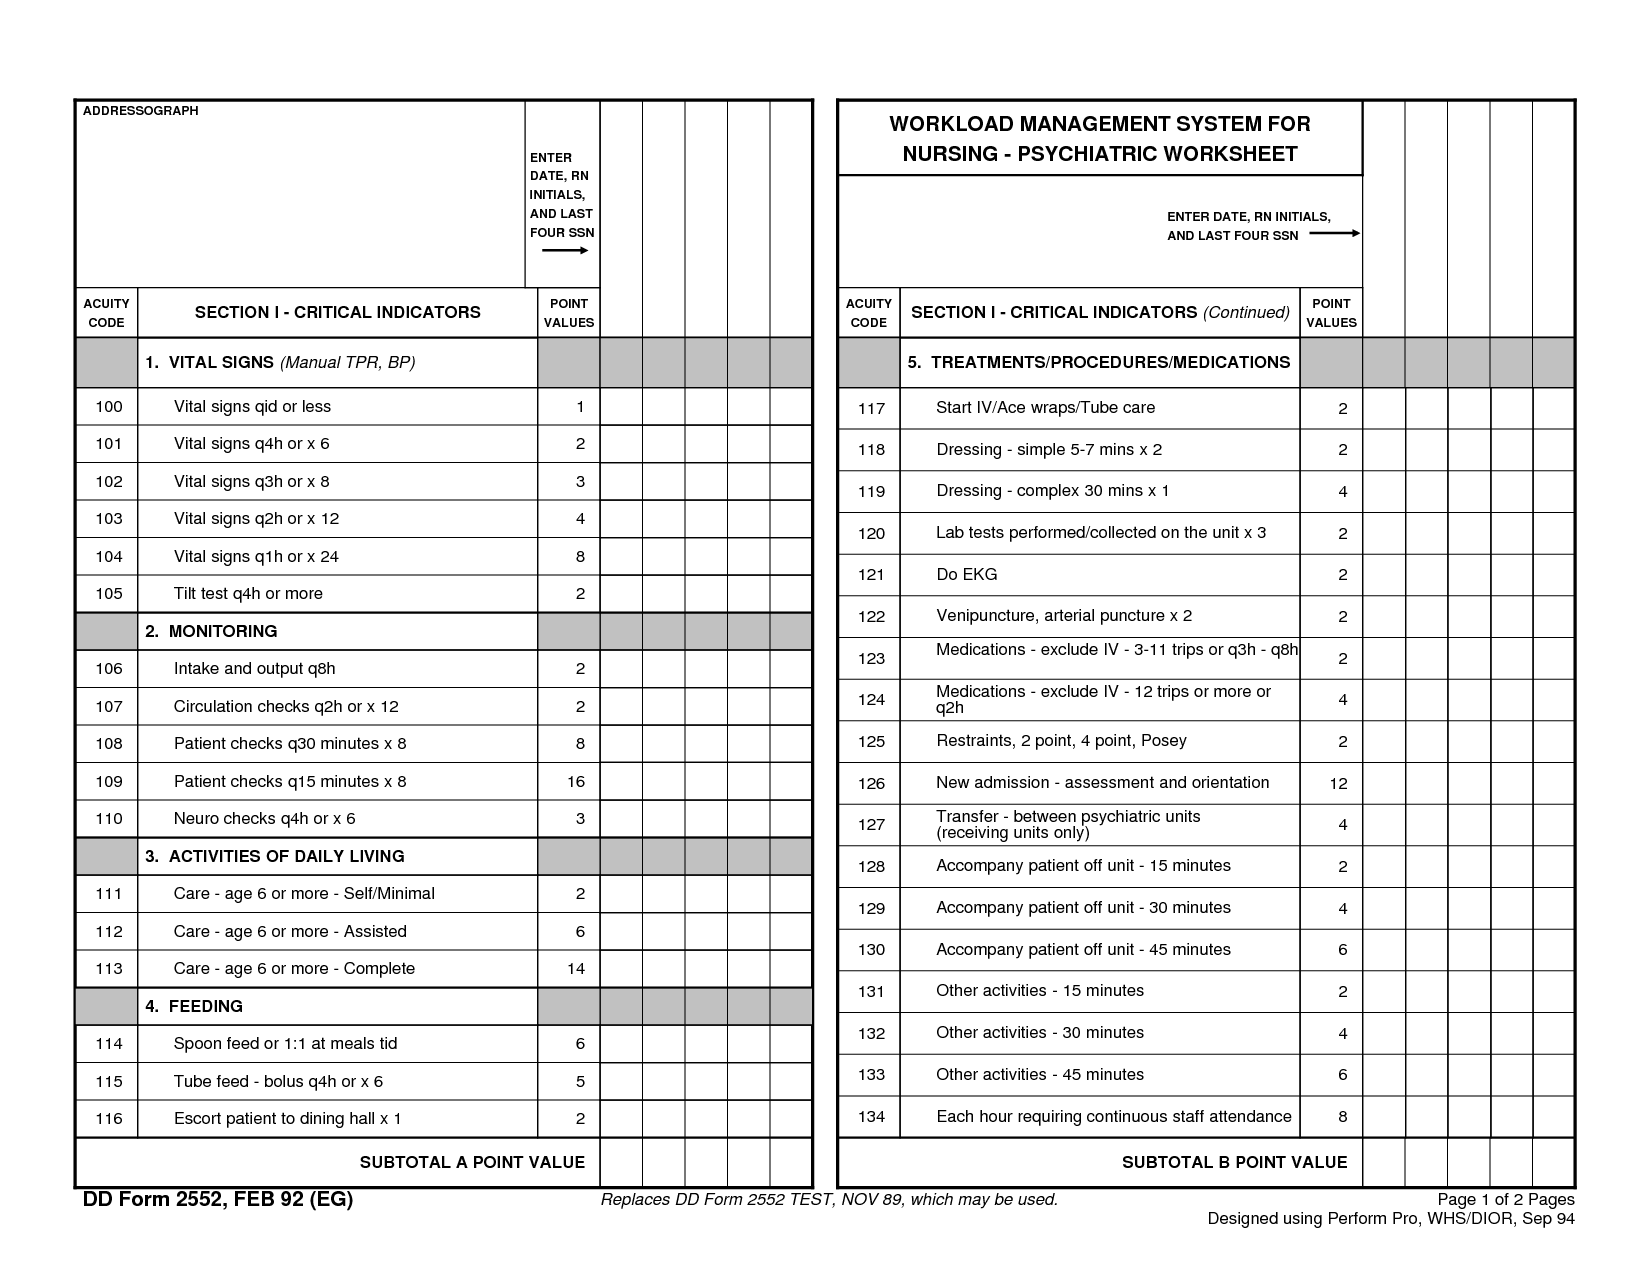 Printables Medication Management Worksheets nursing free printable and worksheets on pinterest workload assessment template dd2552 management system for psychiatric worksheet